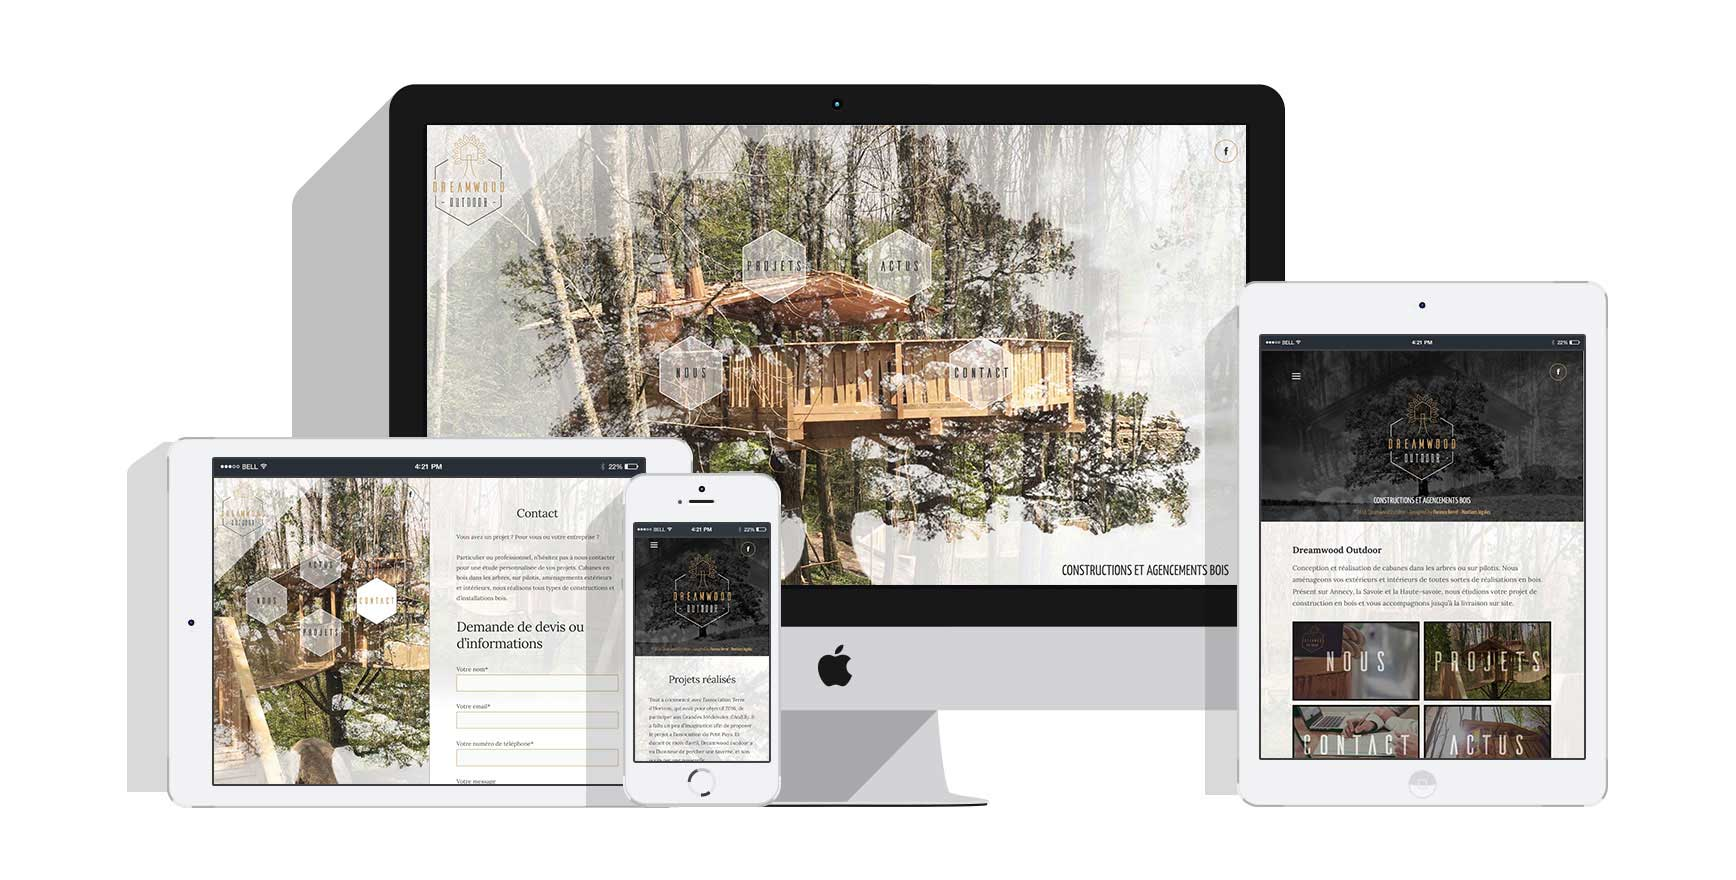 portfolio-dreamwood-florence-borrel-flobo-design-graphique-infographie-webdesign-savoie-tarentaise-meribel-menuires-courchevel